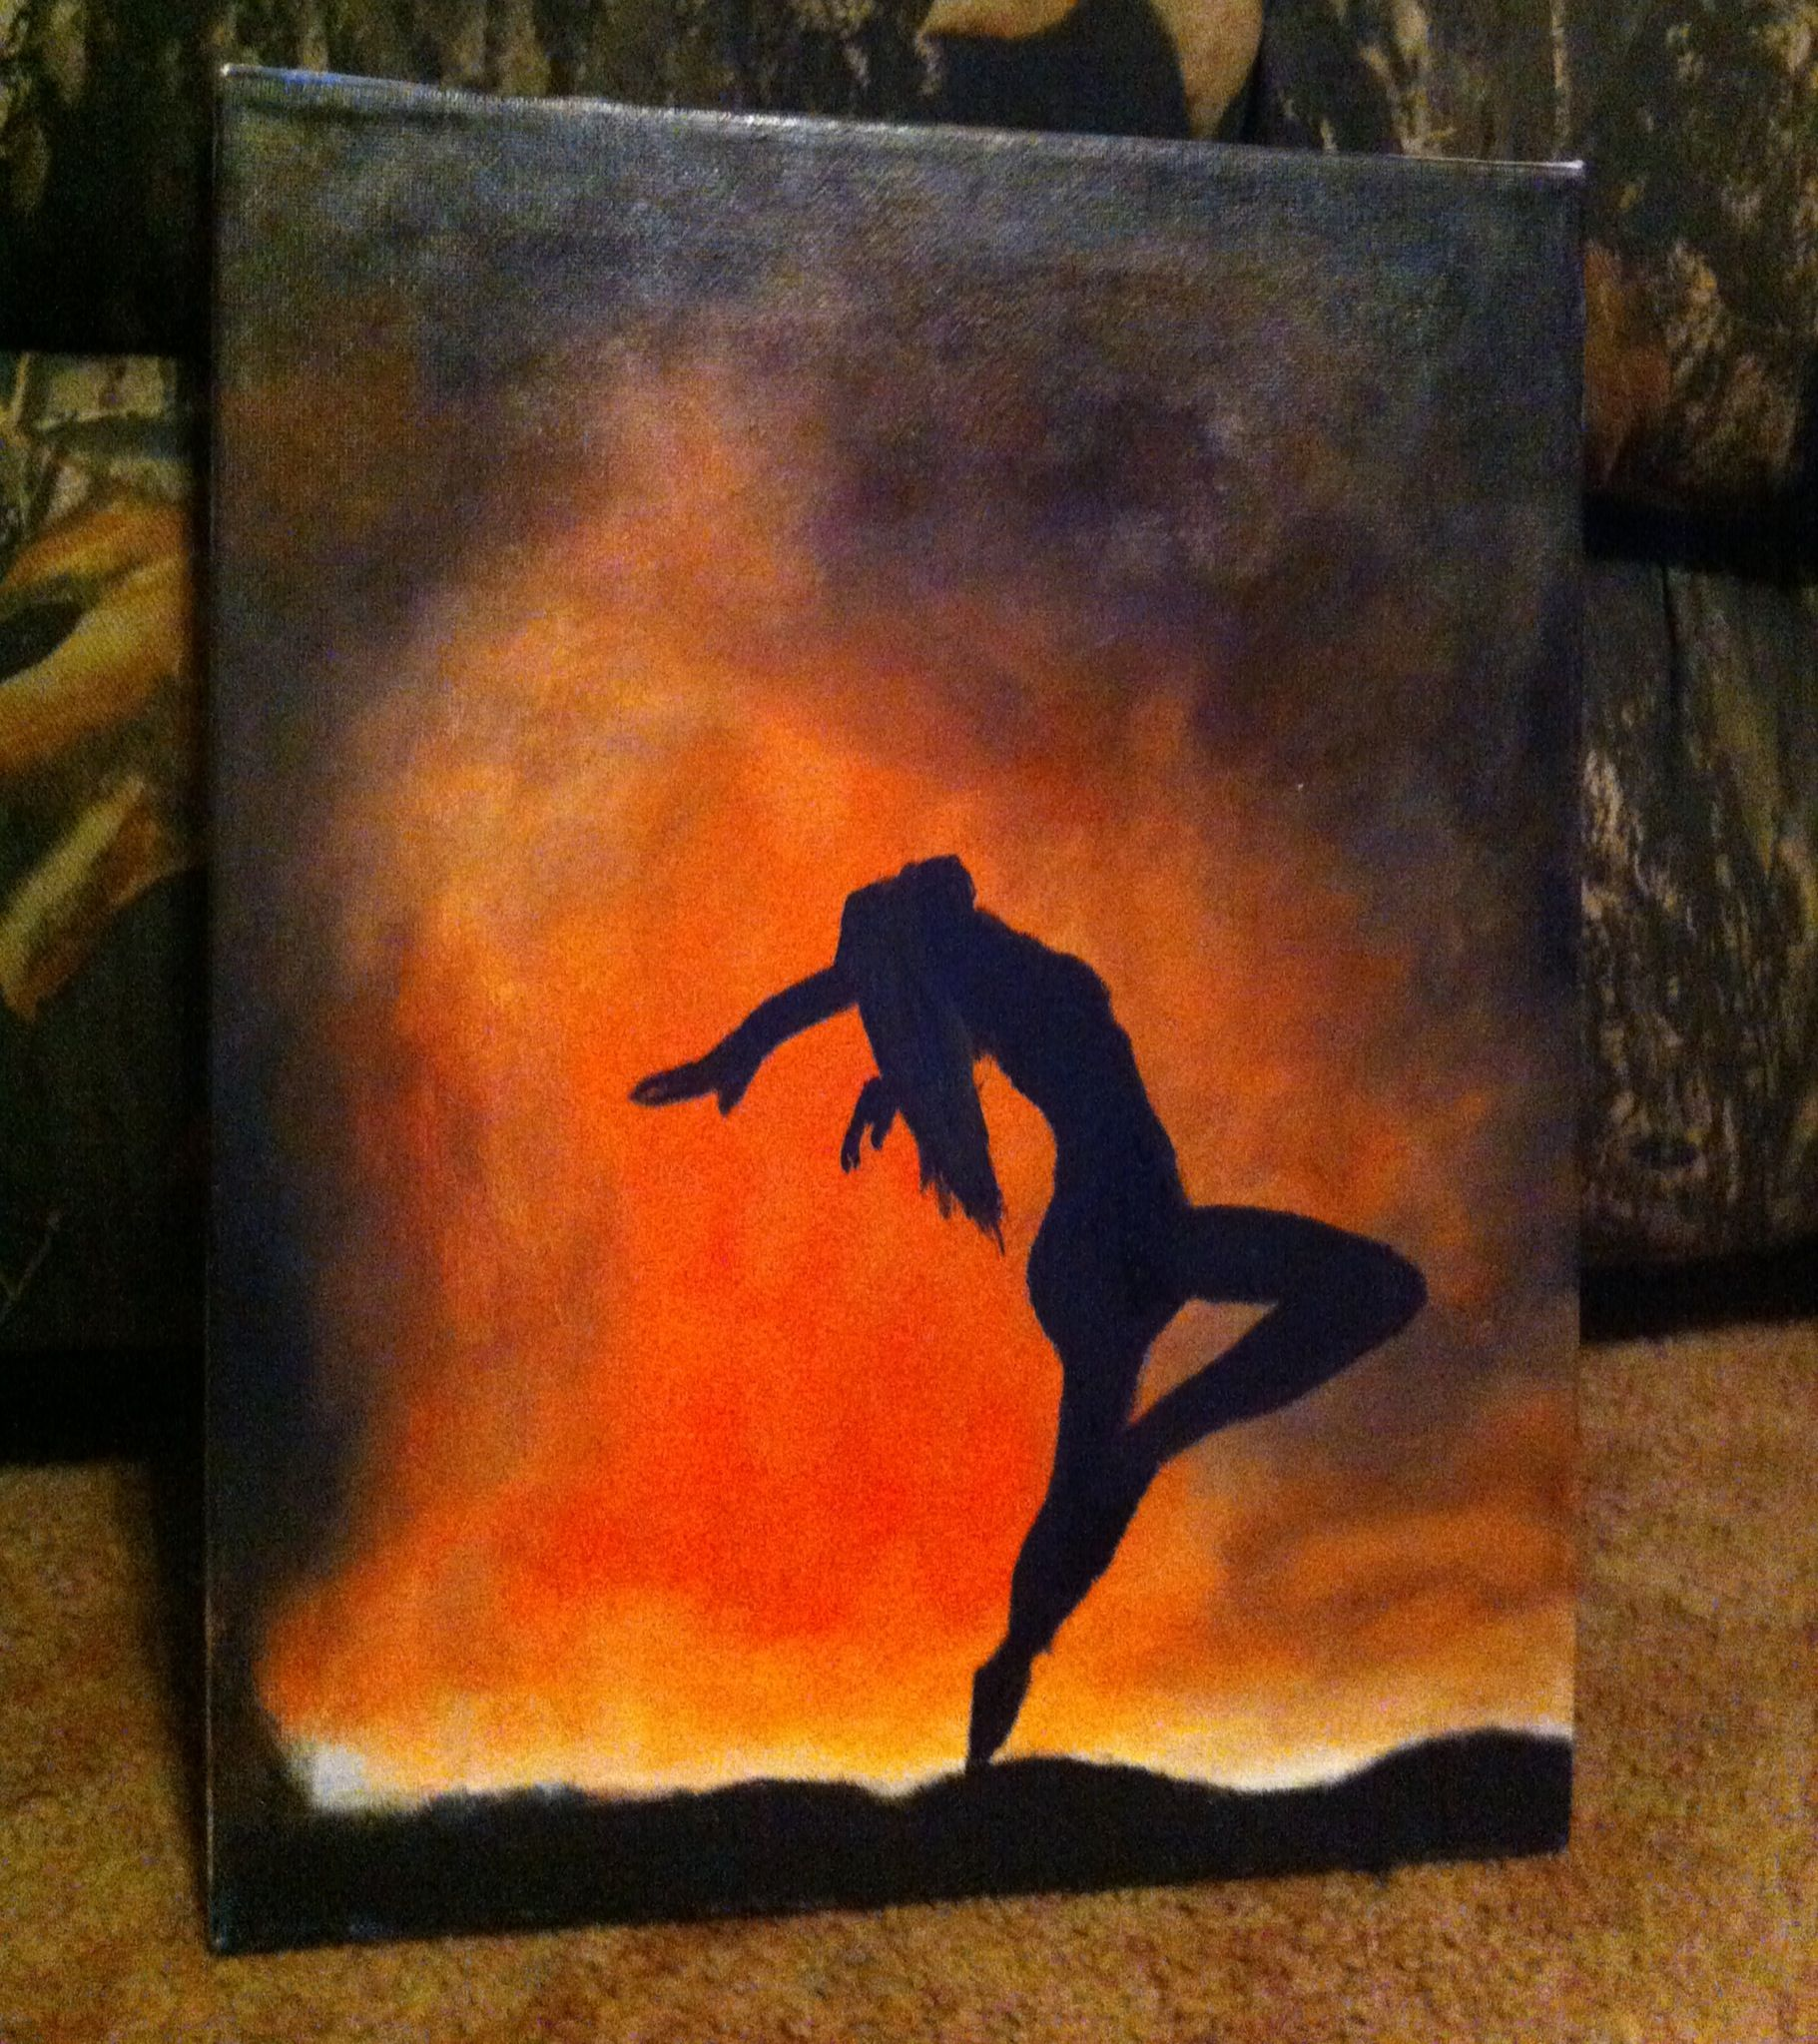 Abstract Painting Of Girl Dancing Dancing Fire Painting Art Pinterest Fire Painting